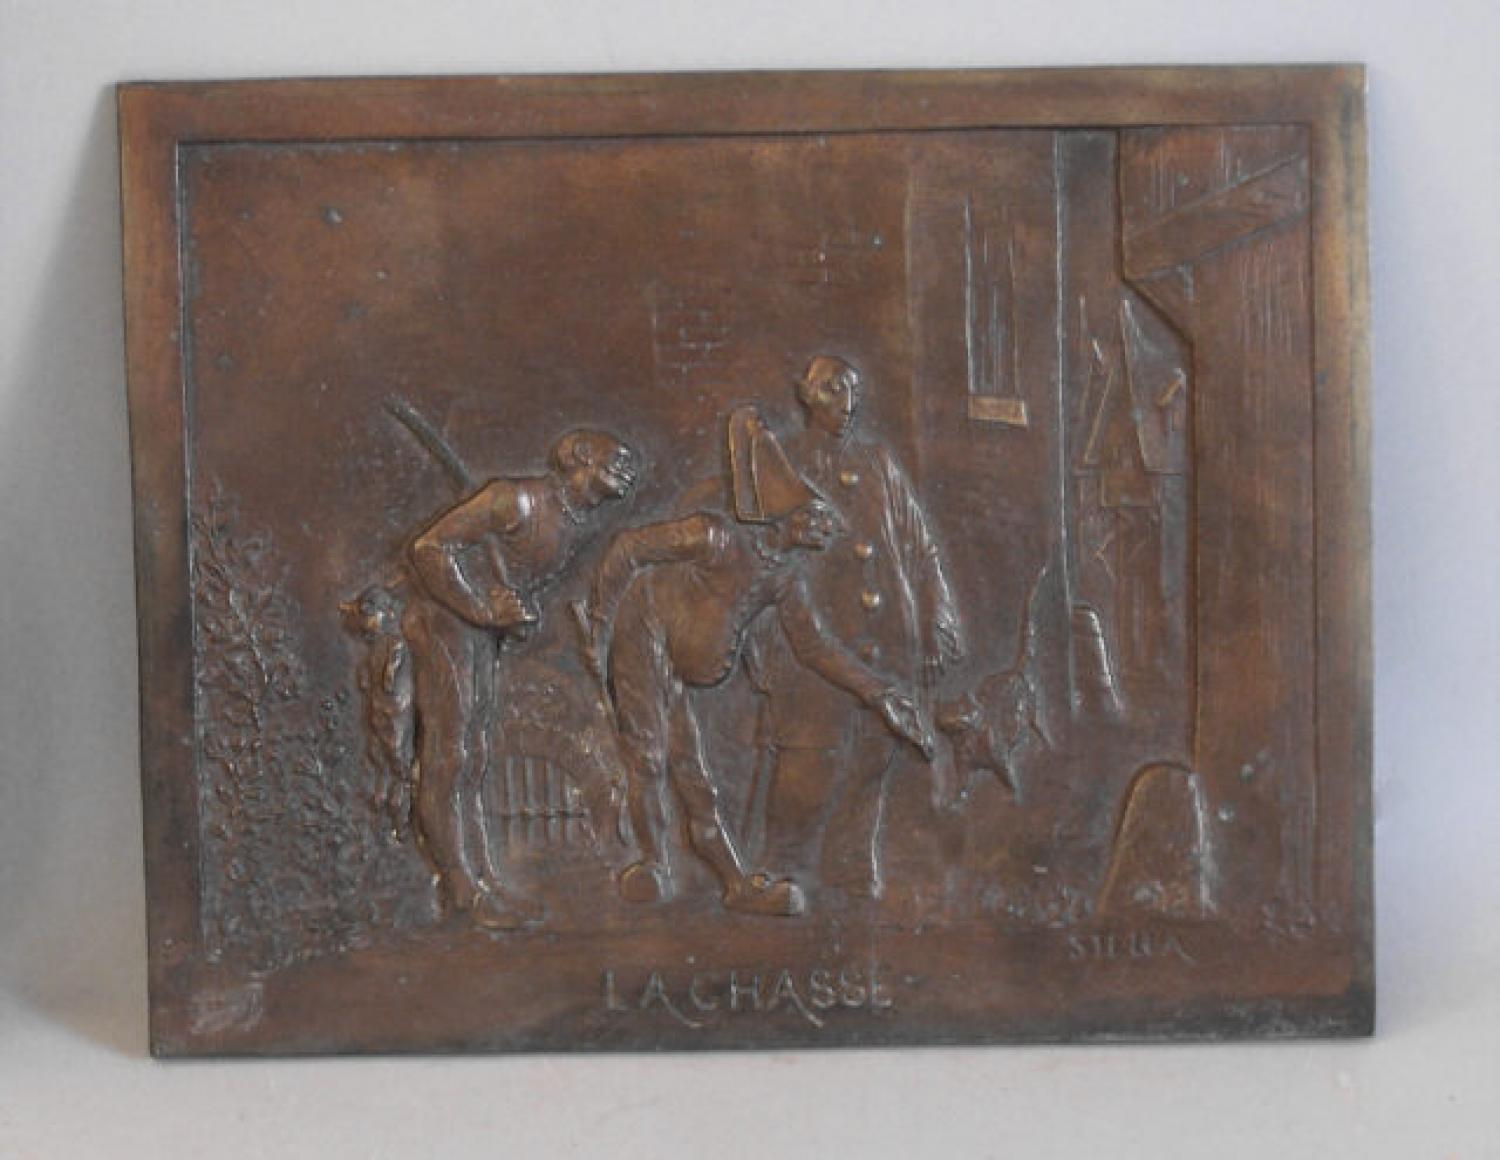 French  bronze plaque Lachasse by Stella